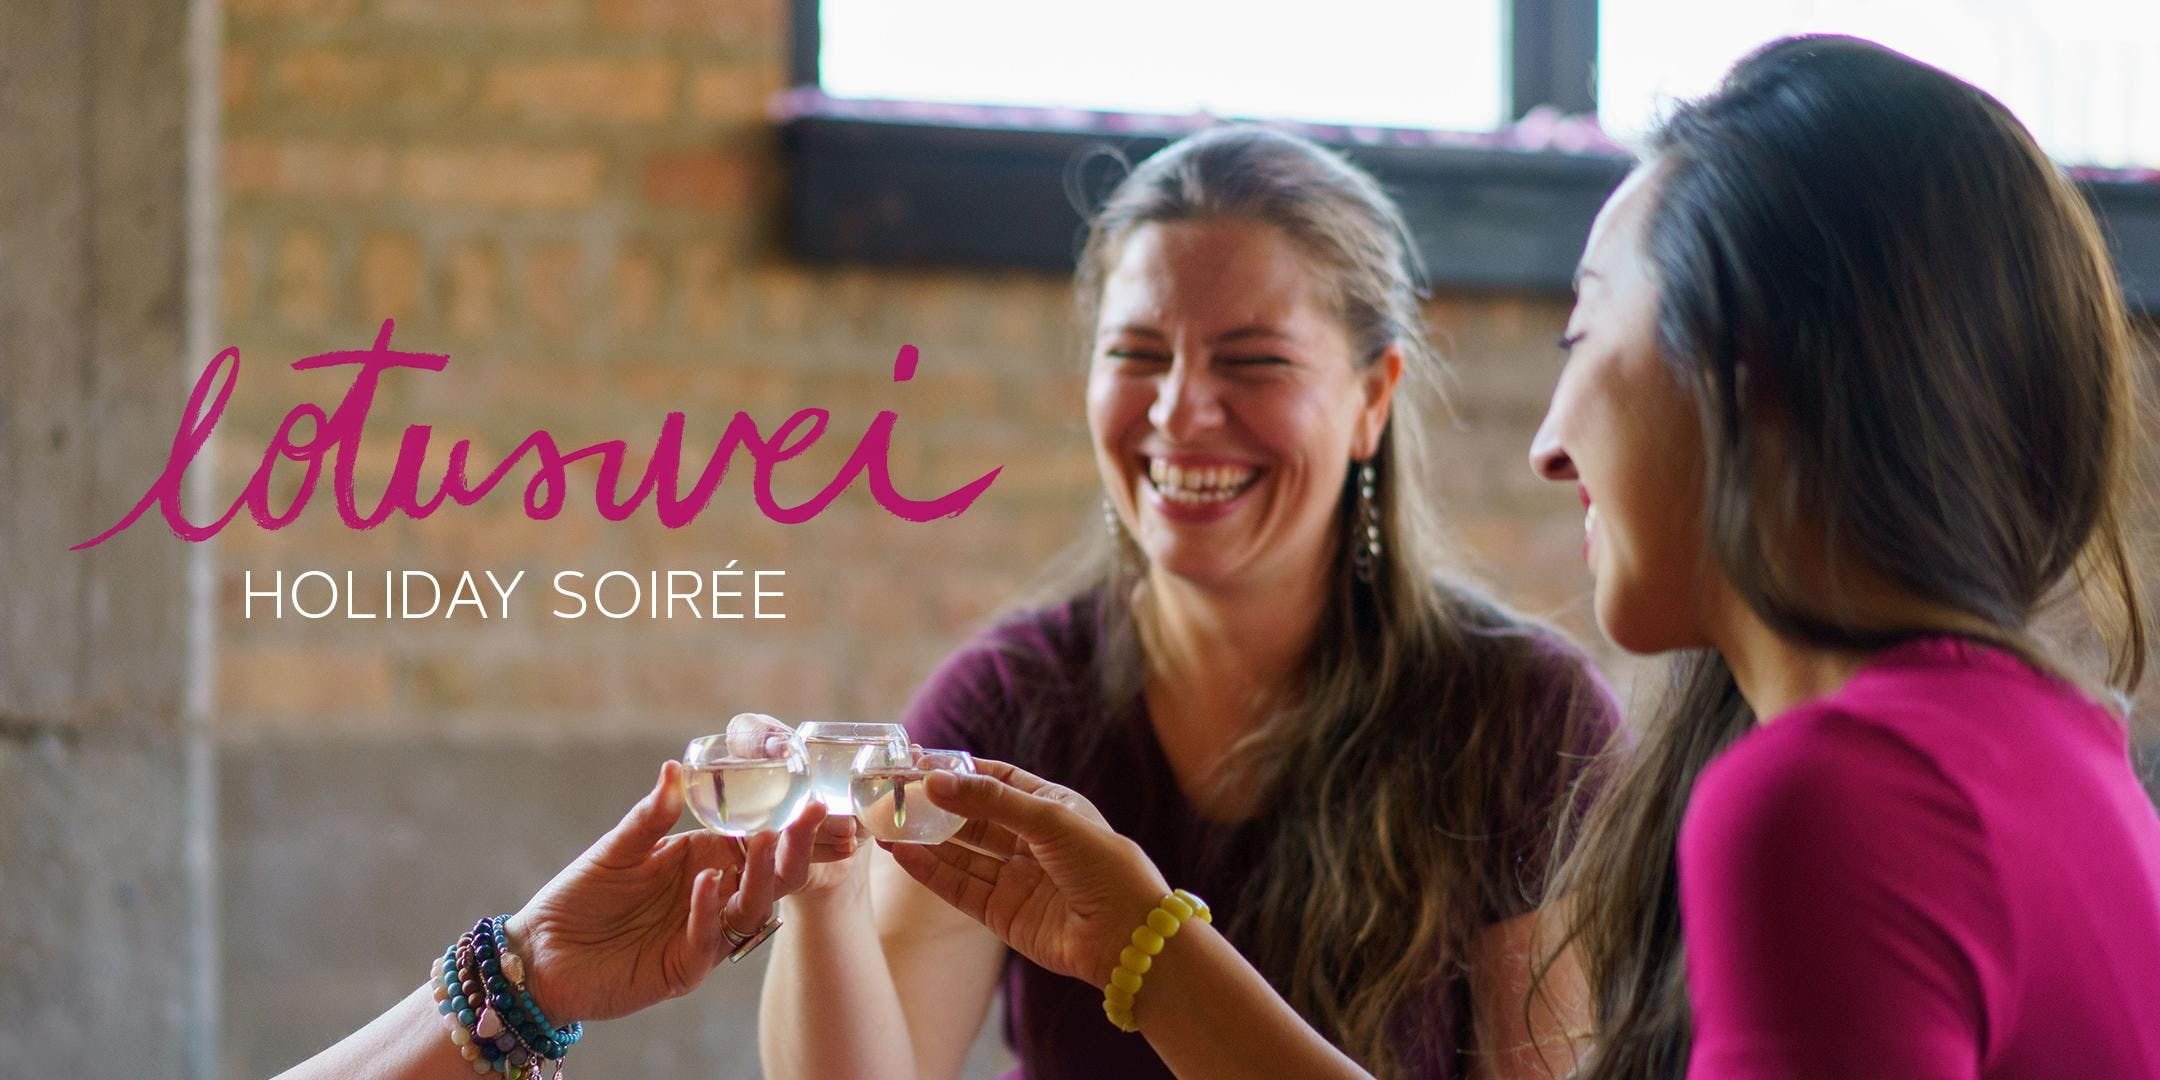 LOTUSWEI Holiday Soiree